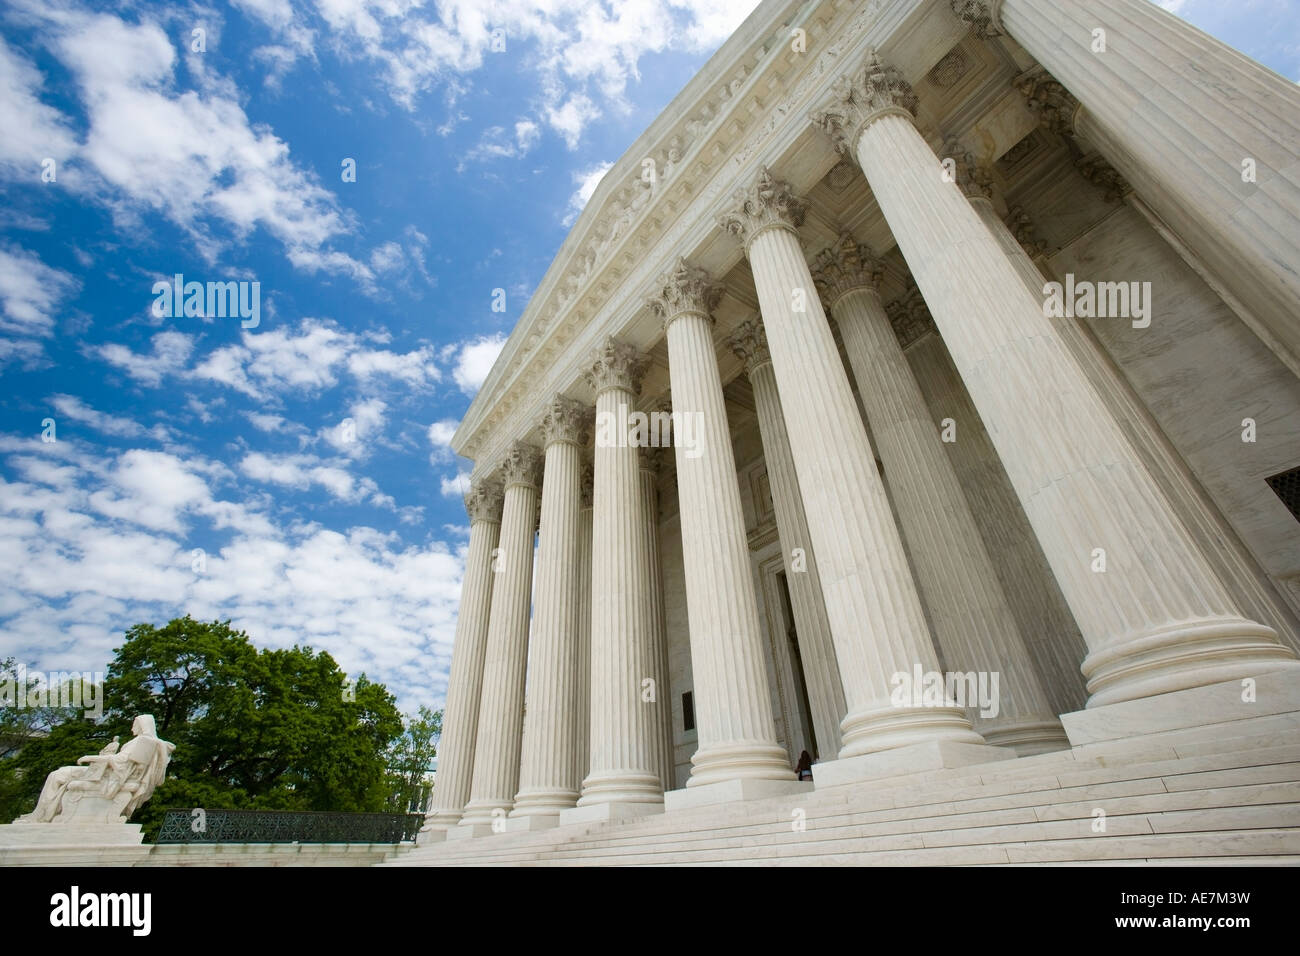 USA Washington DC Columns at the supreme court - Stock Image